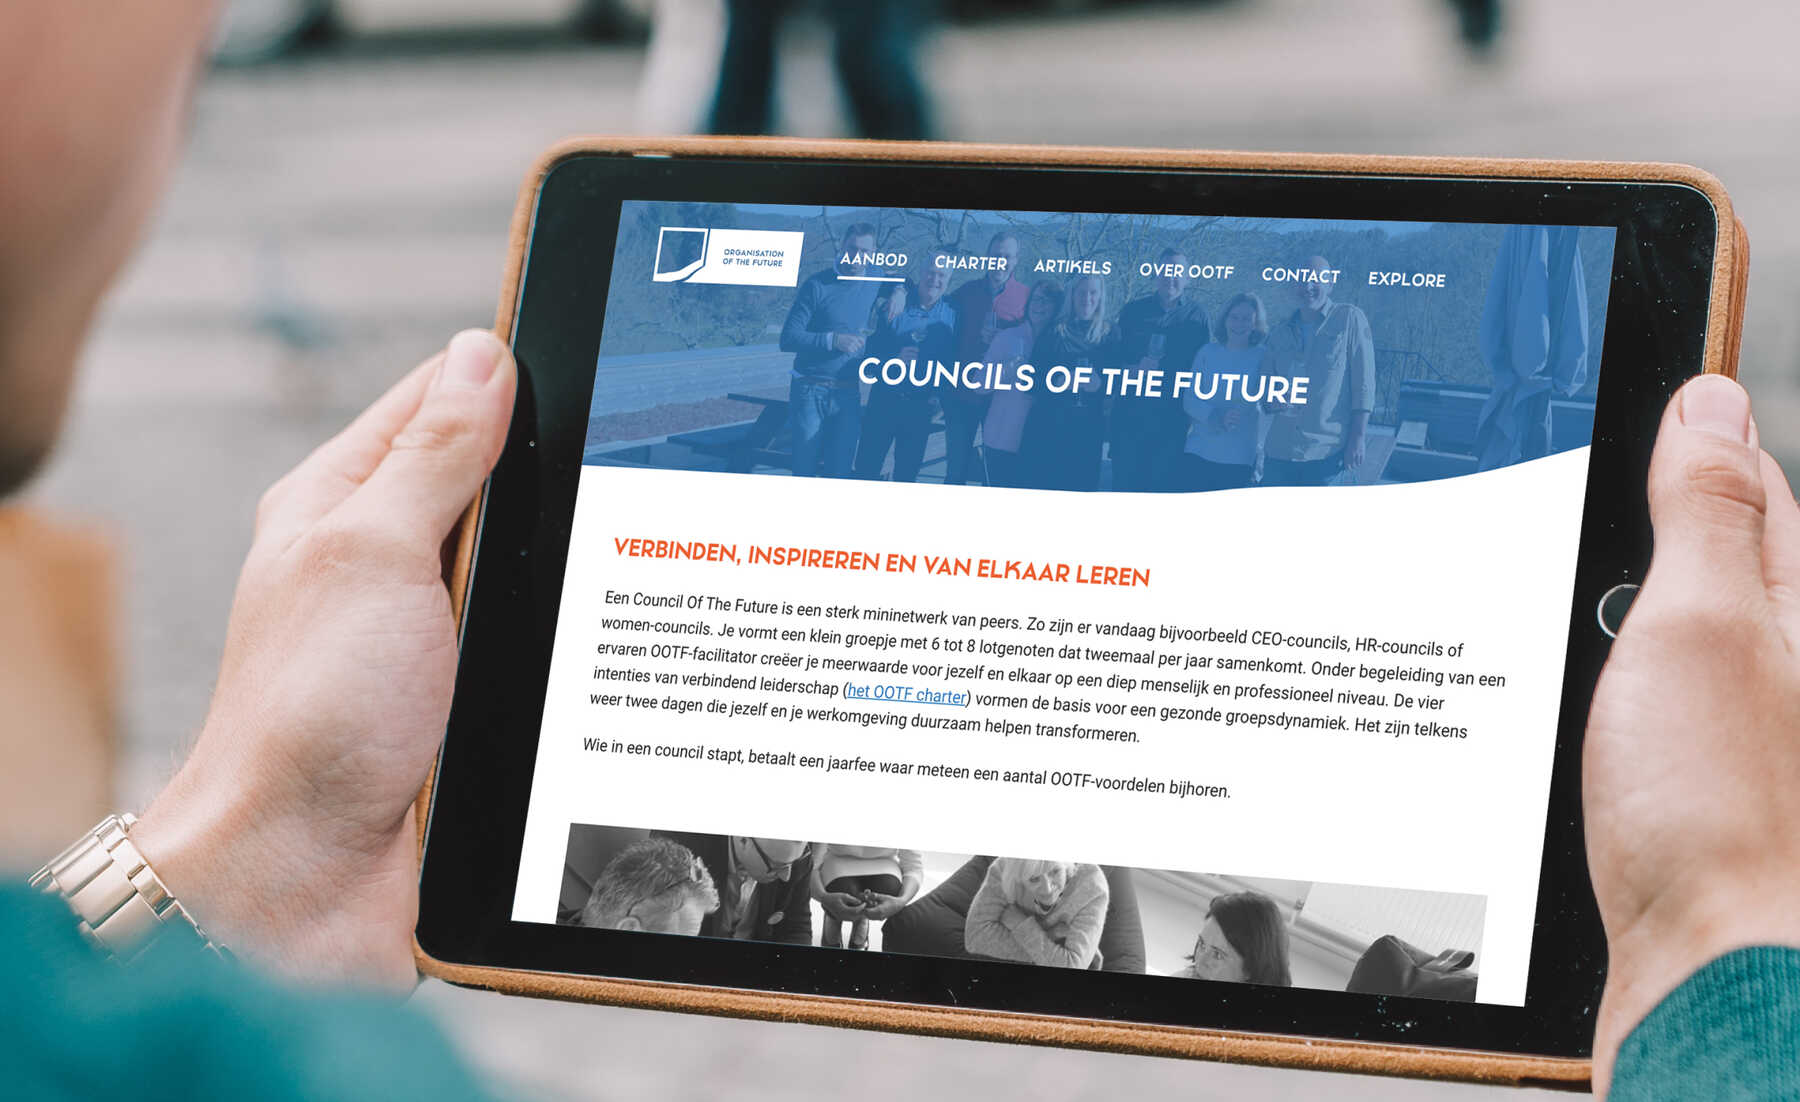 OOTF councils of the future